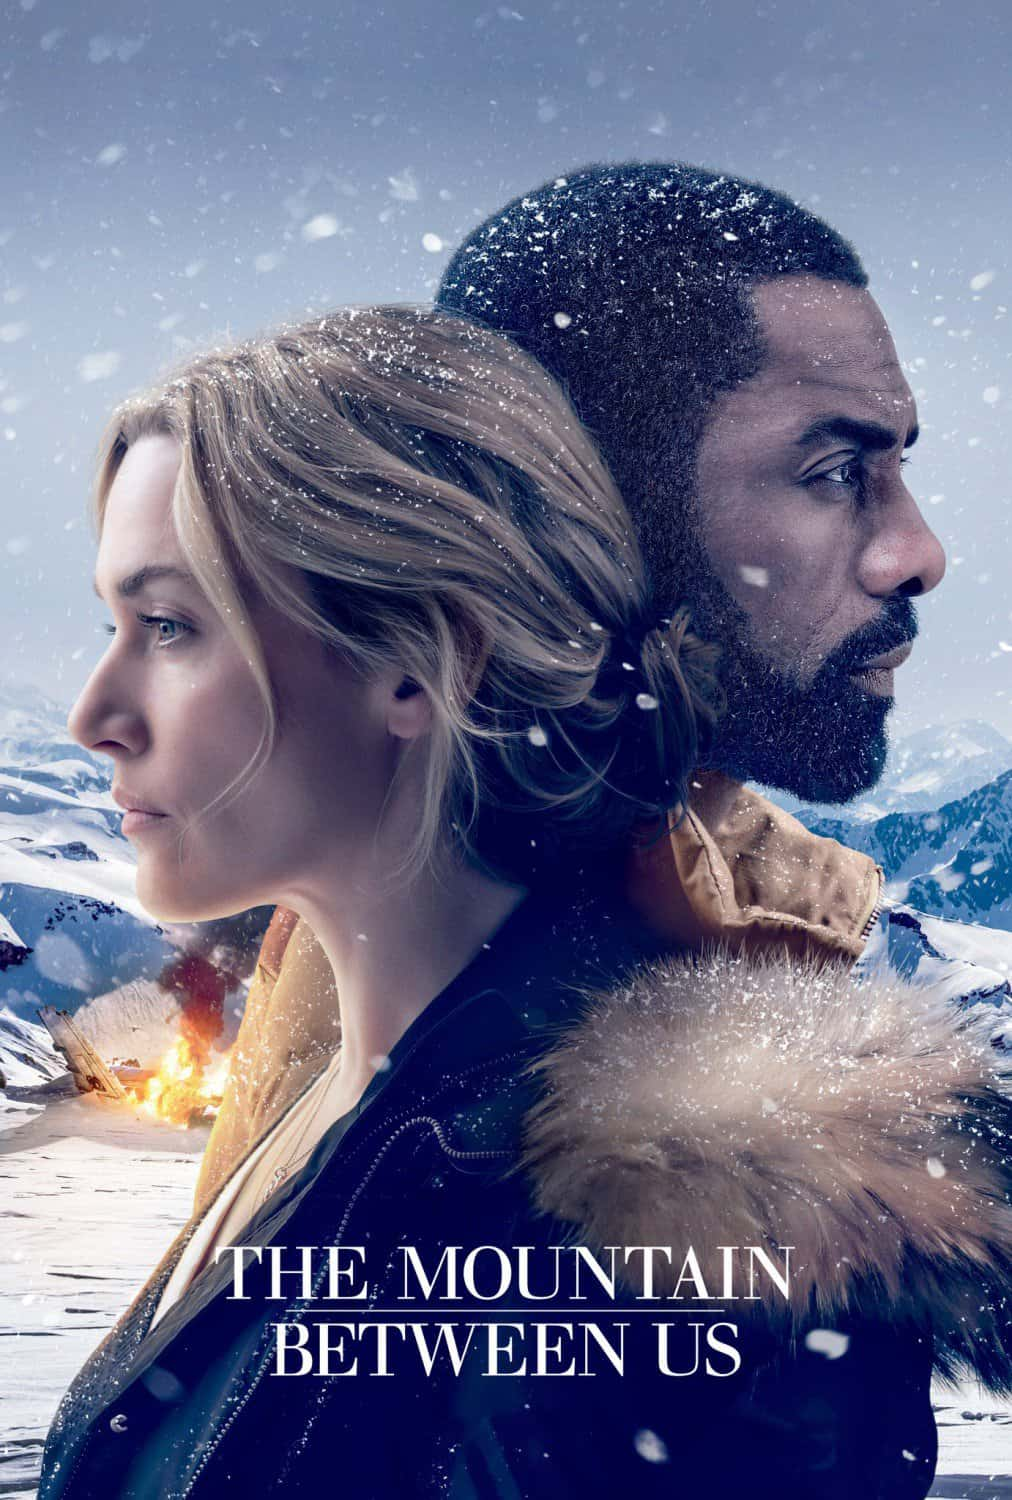 The Mountain Between Us, 2017